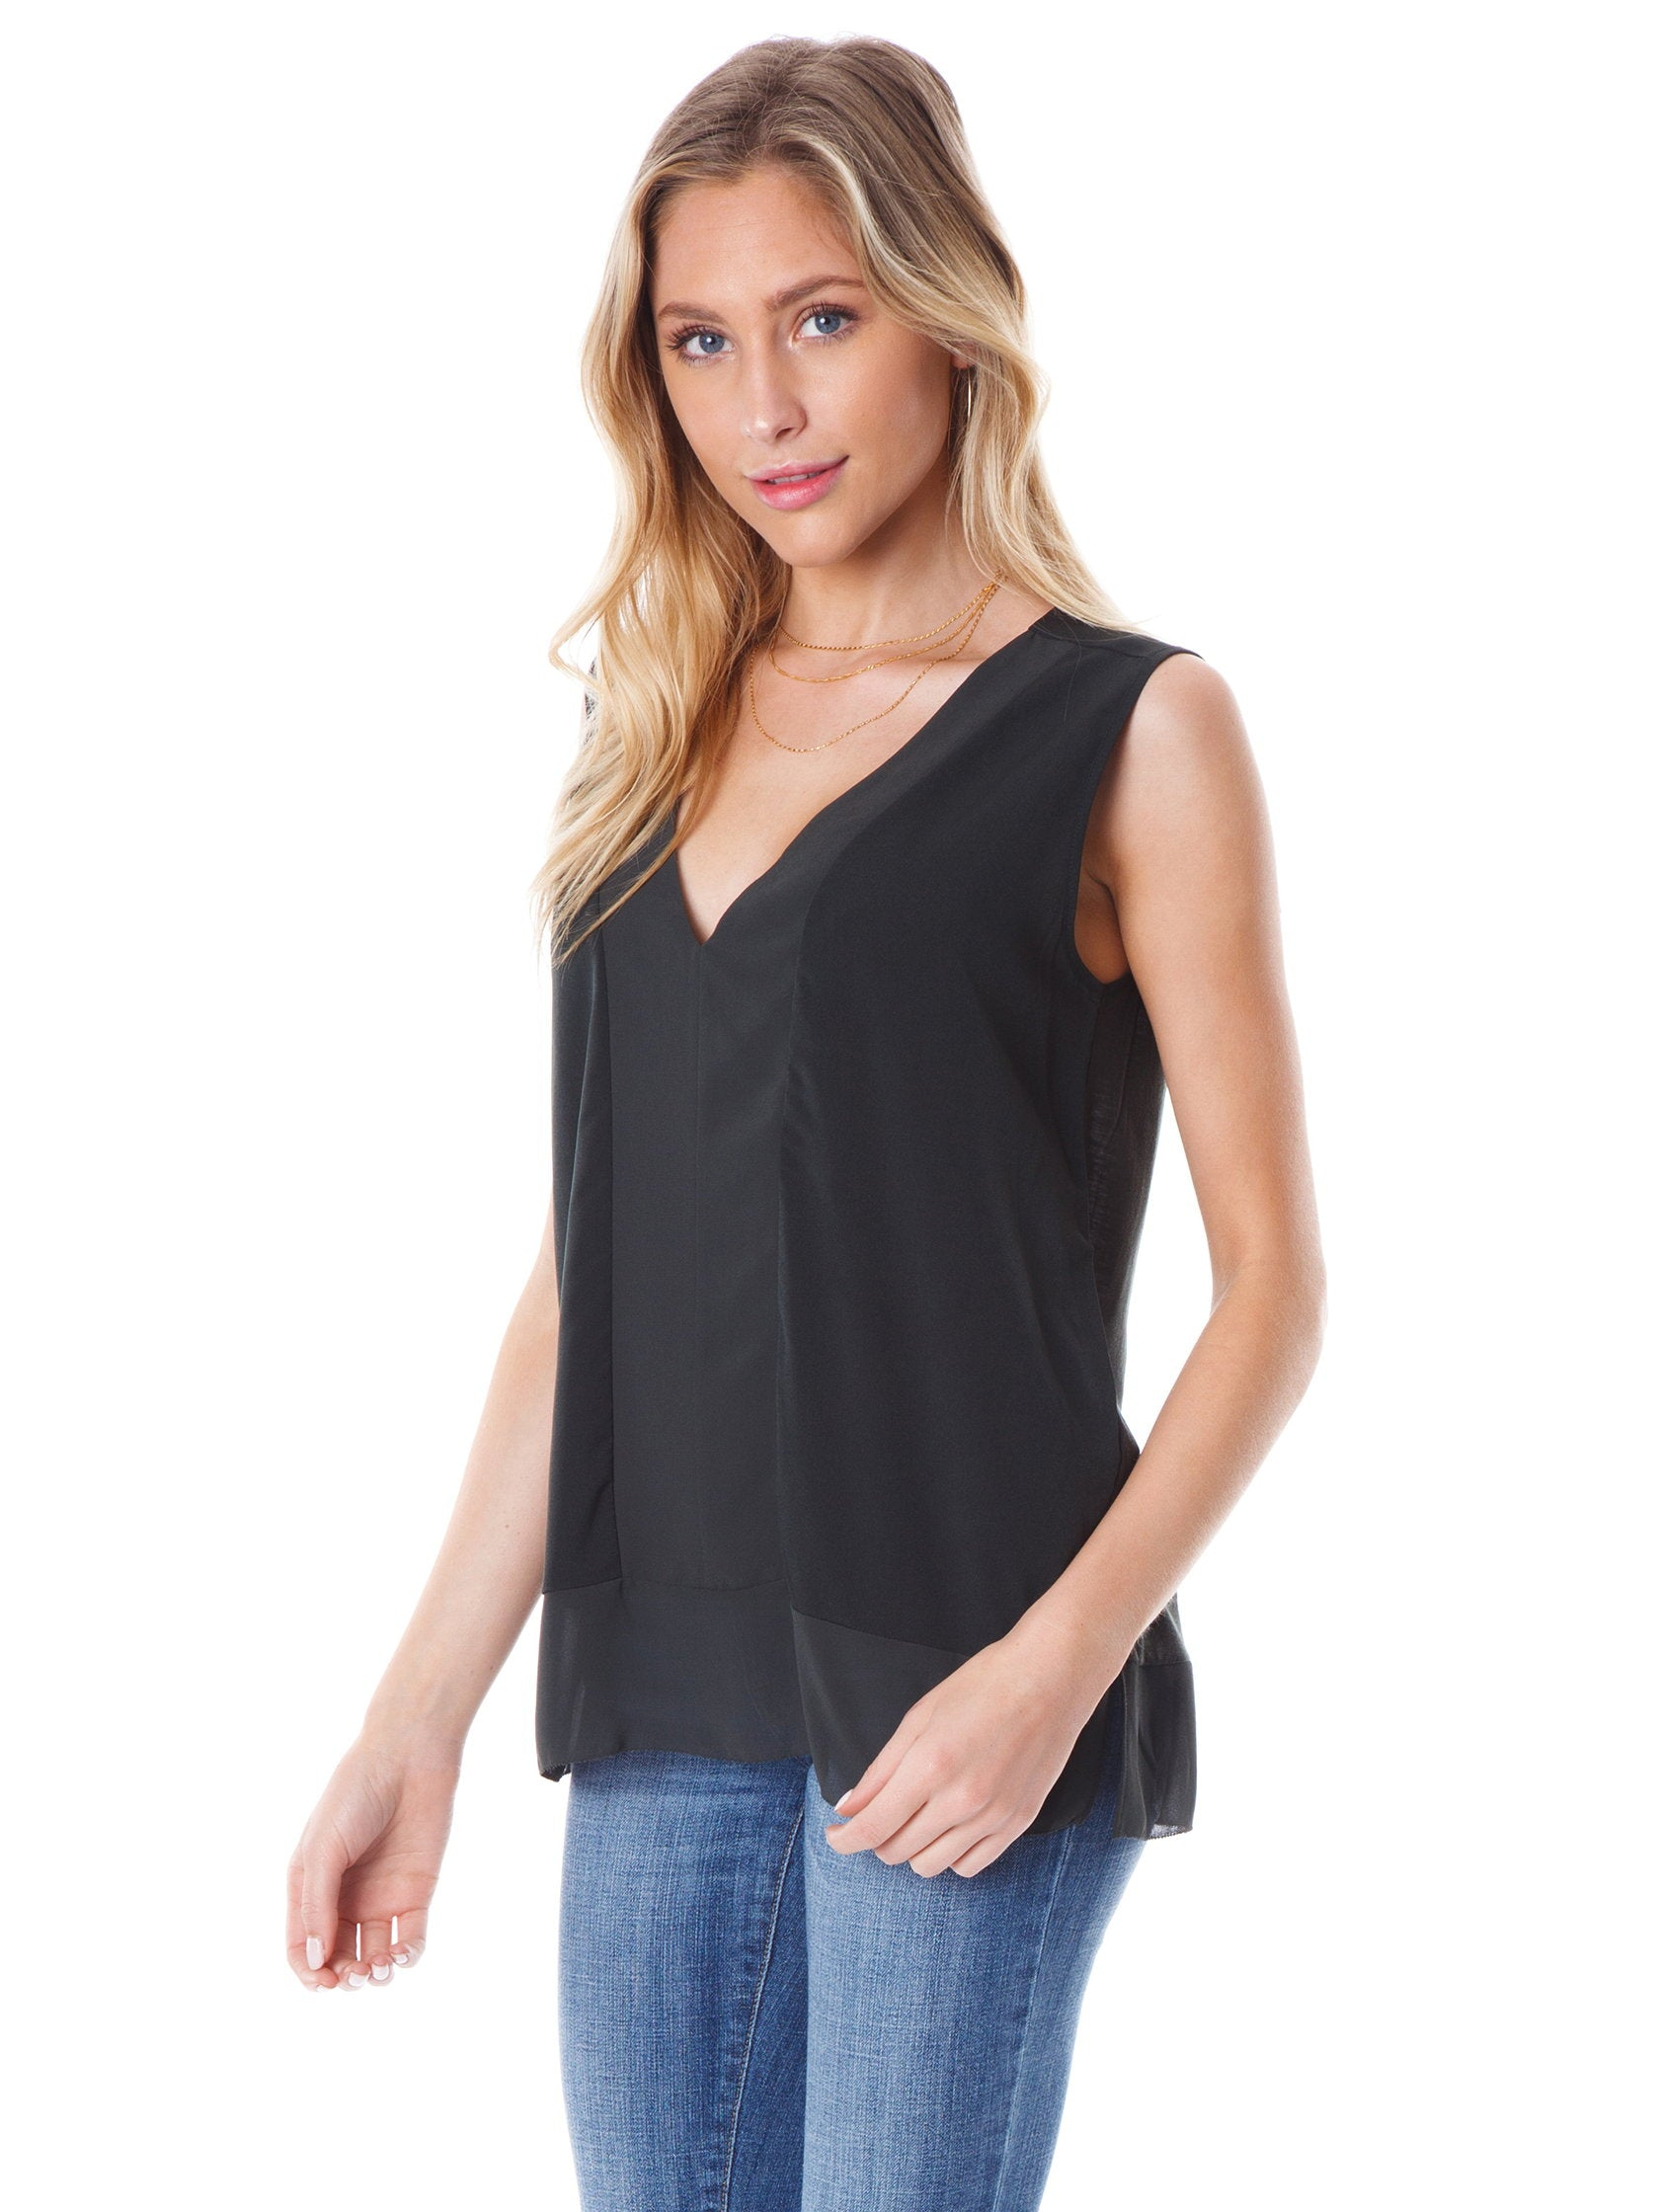 Women wearing a top rental from French Connection called Classic Crepe Light Sleeveless Top